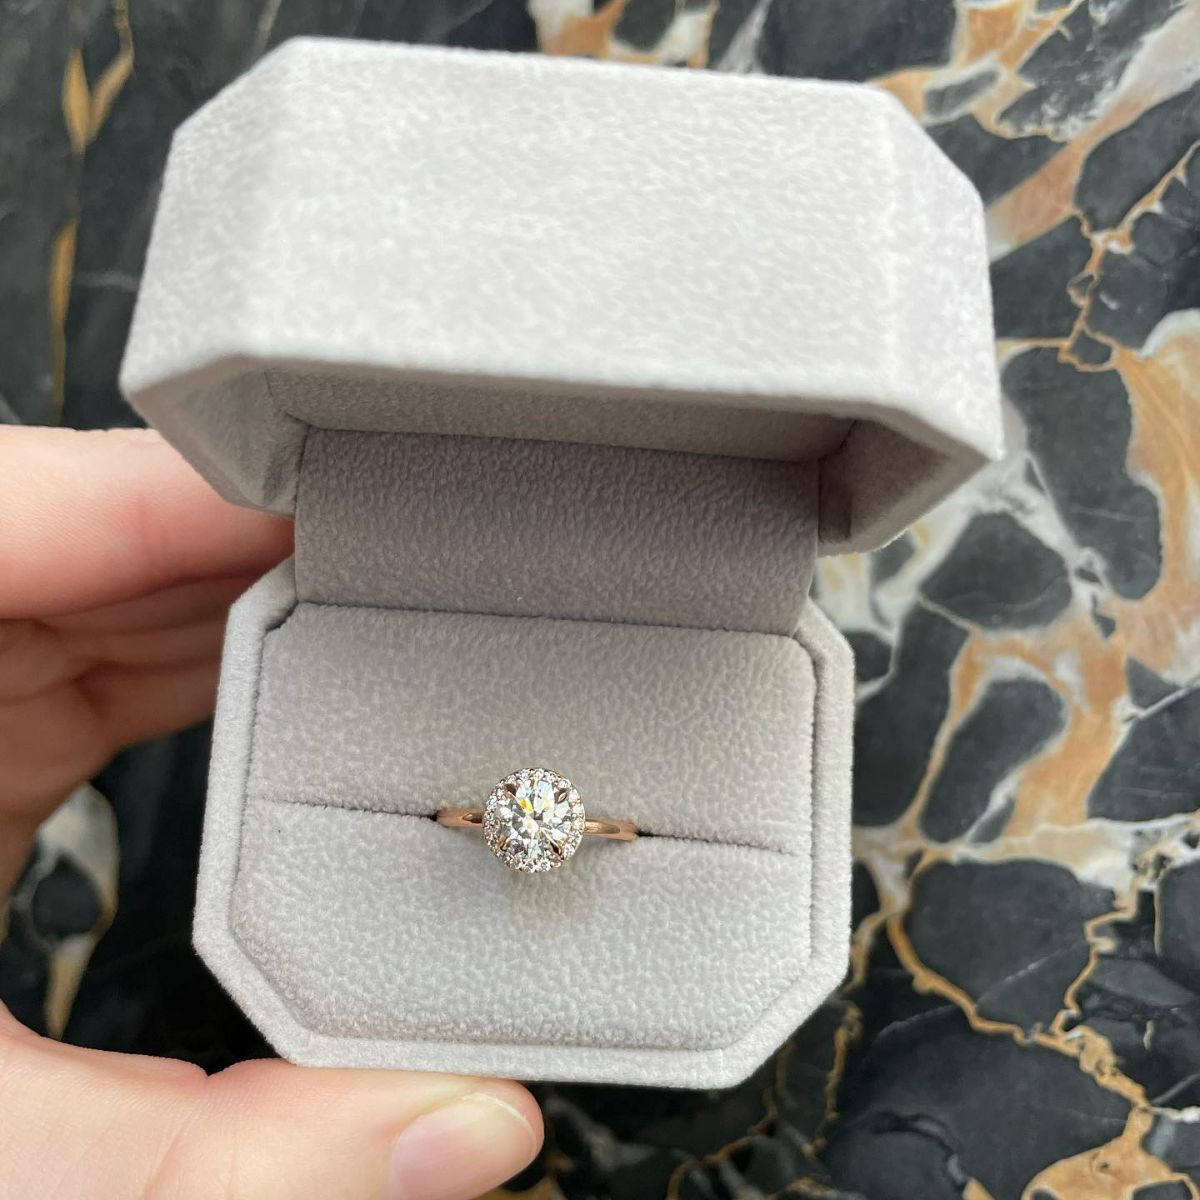 Link takes you to designer engagement rings. Photo shows ring box with round diamond engagement ring inside